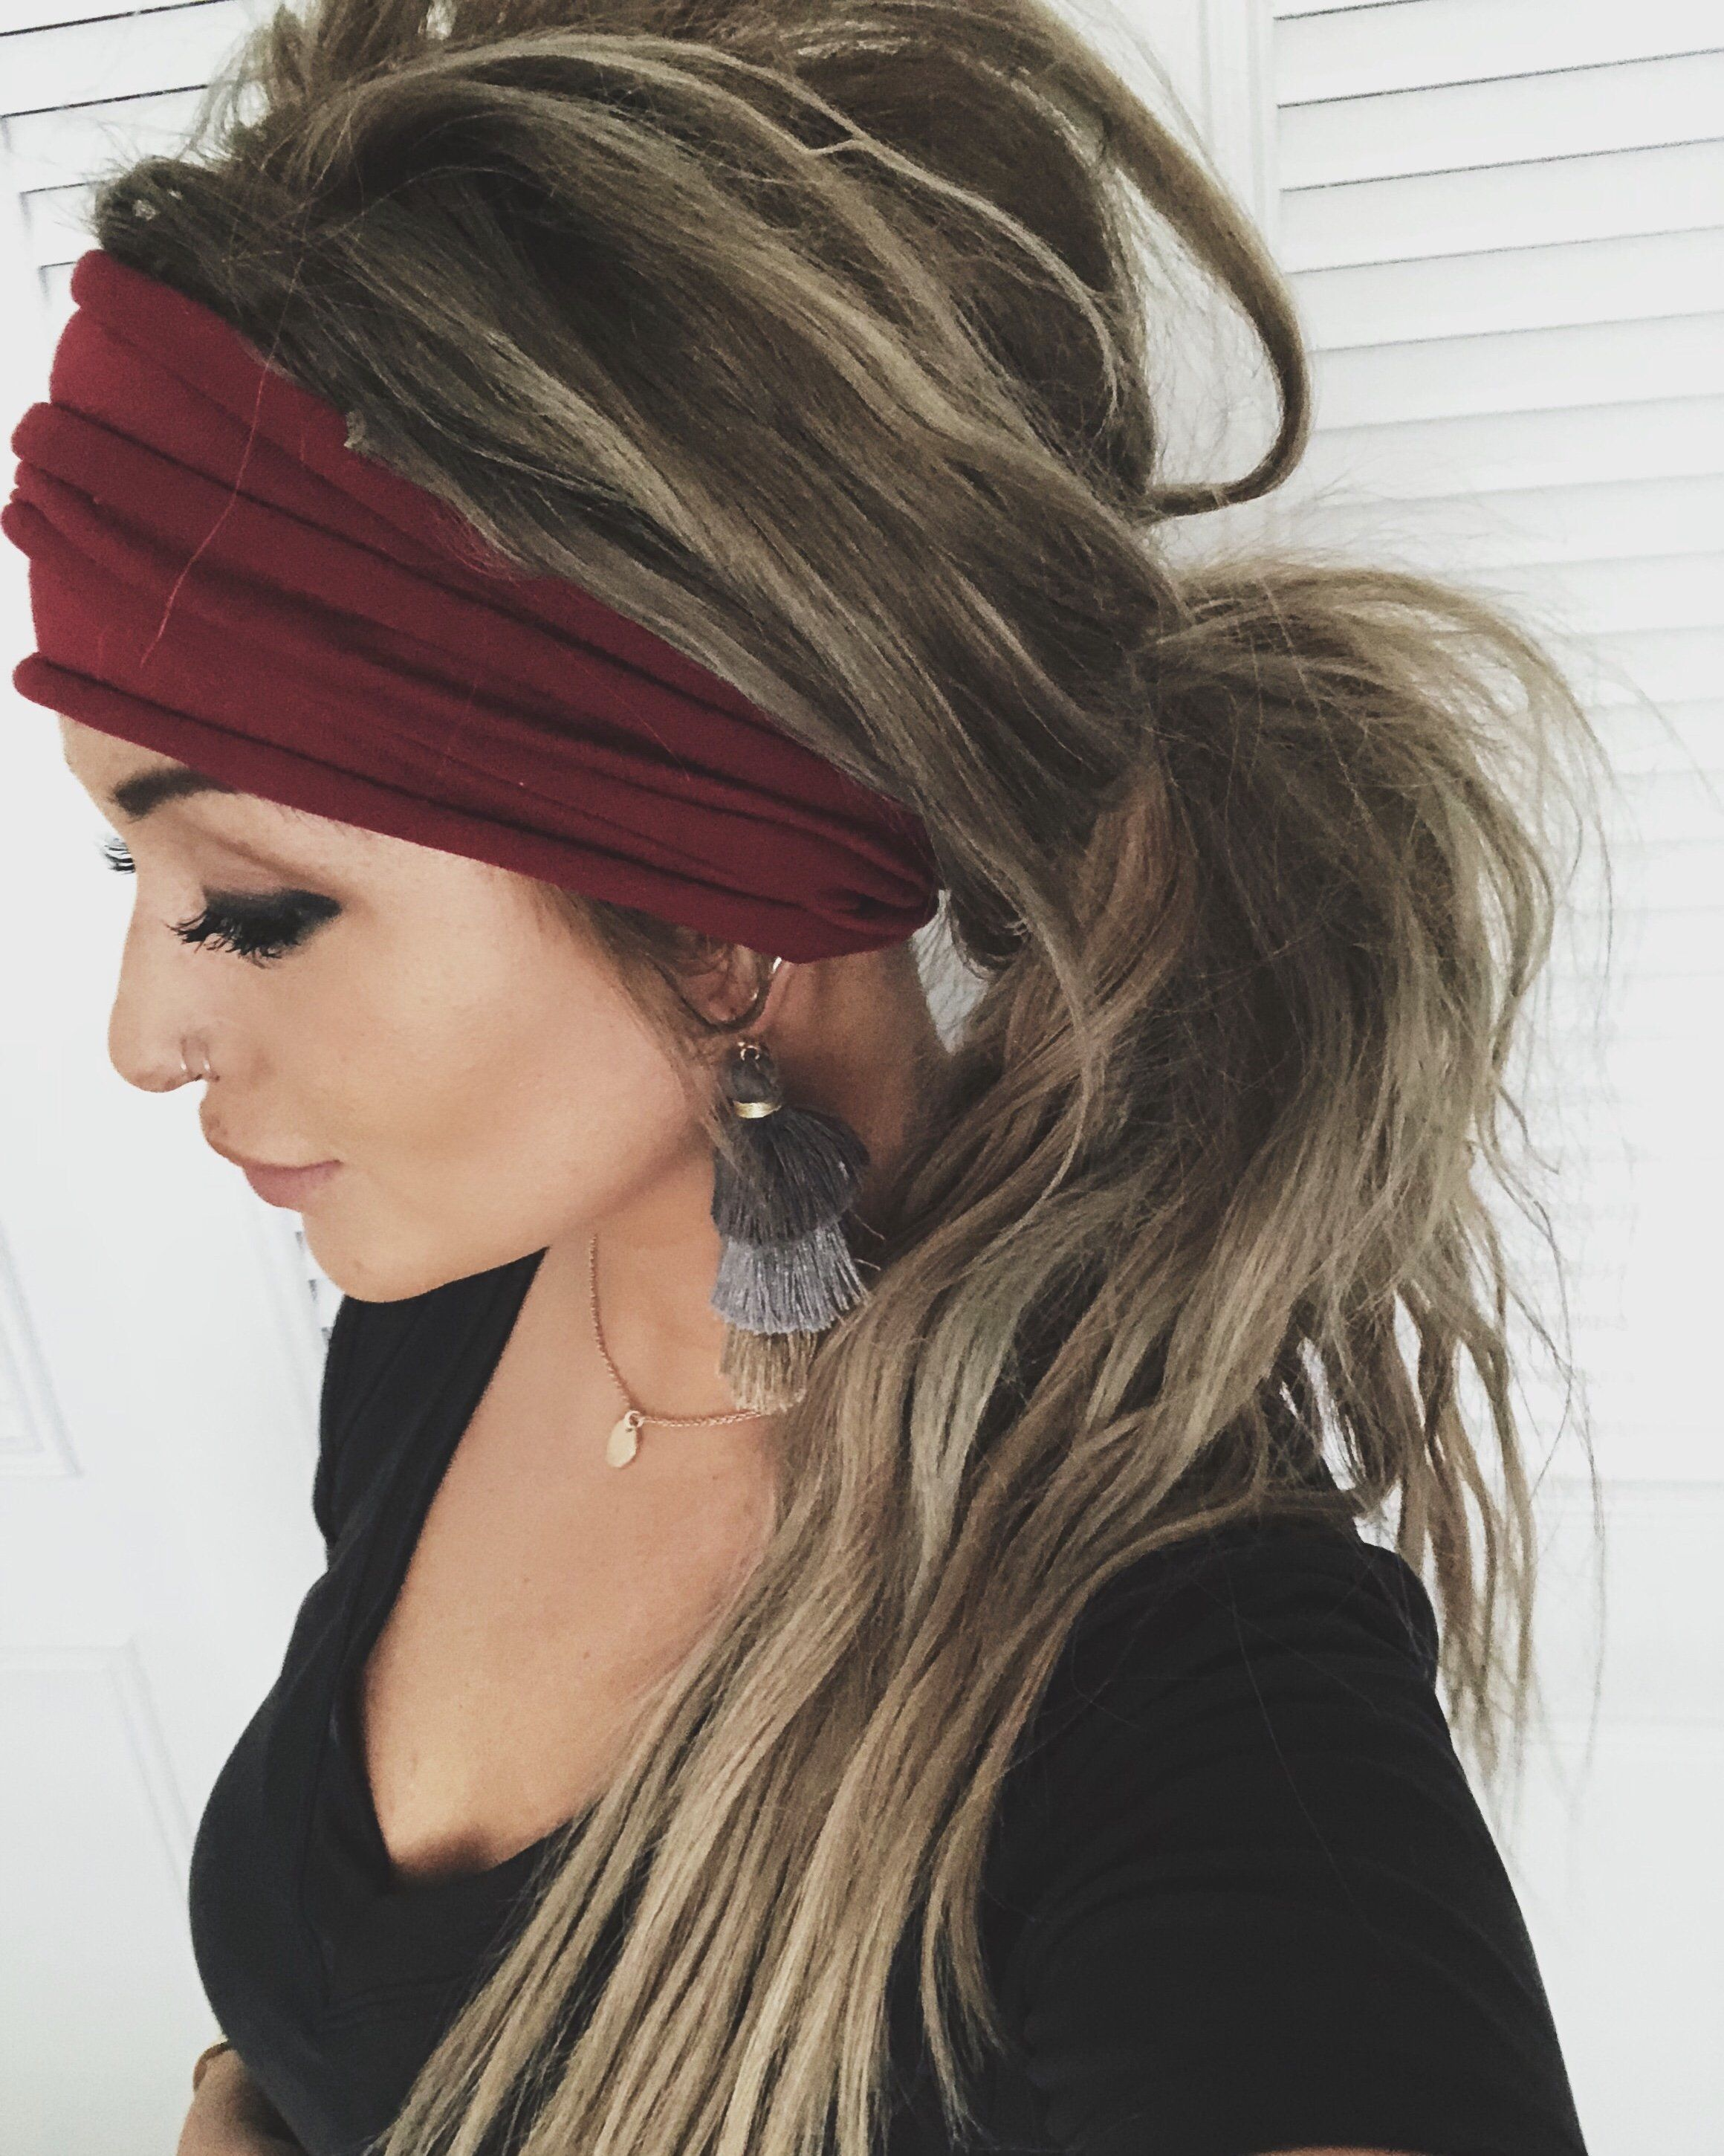 extra wide headband // twist turban: scarlet | boho